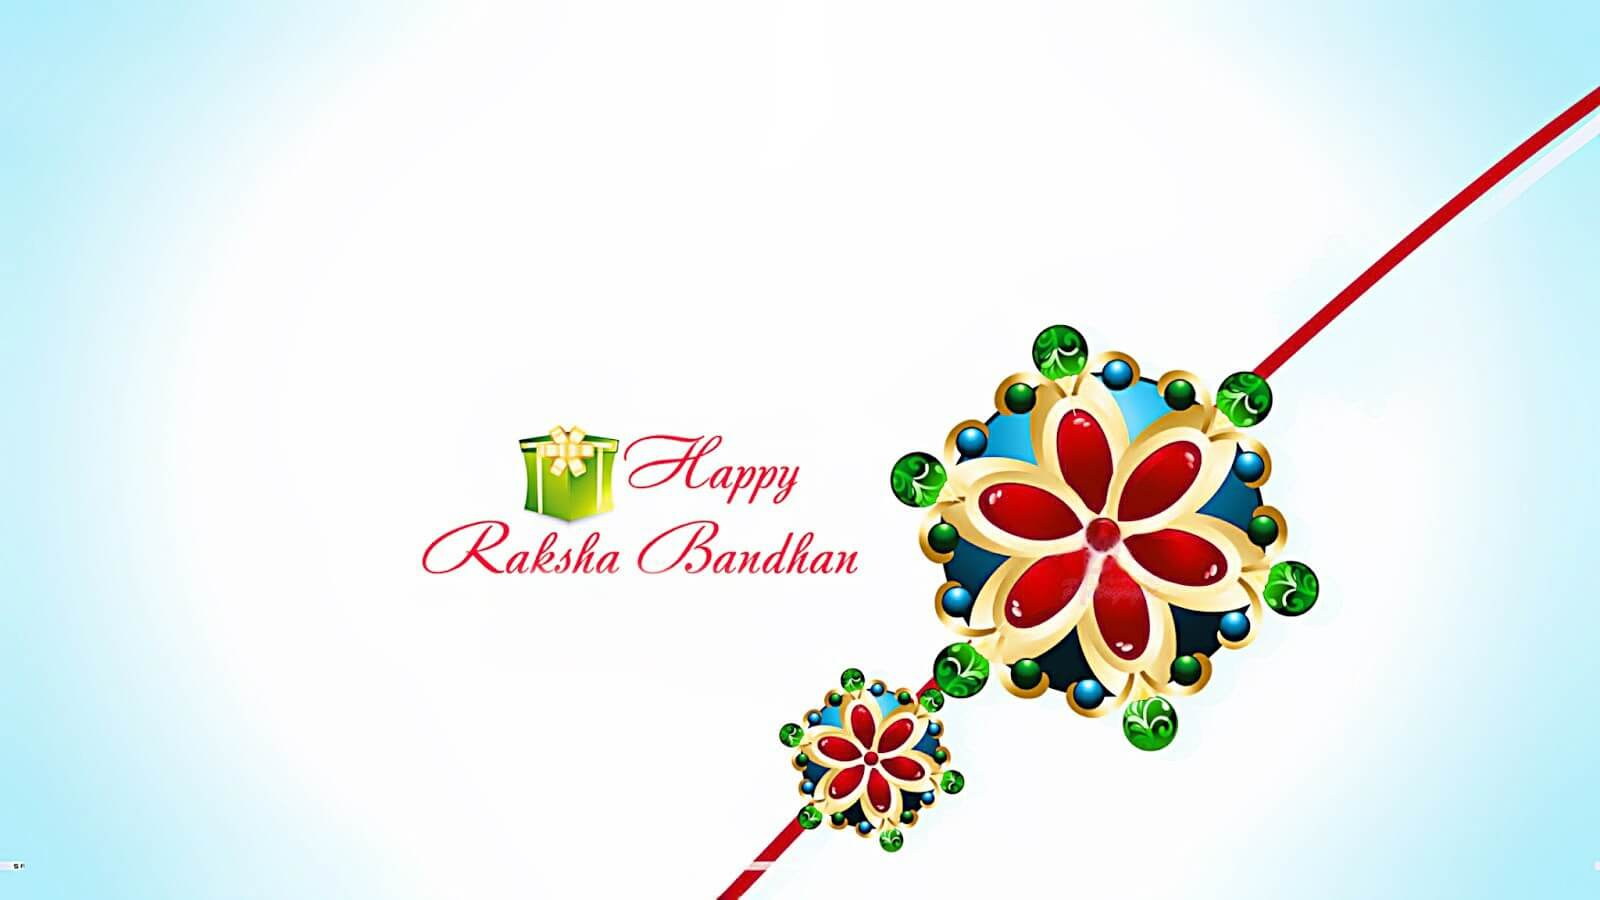 Happy raksha bandhan greetings wallpaper m4hsunfo